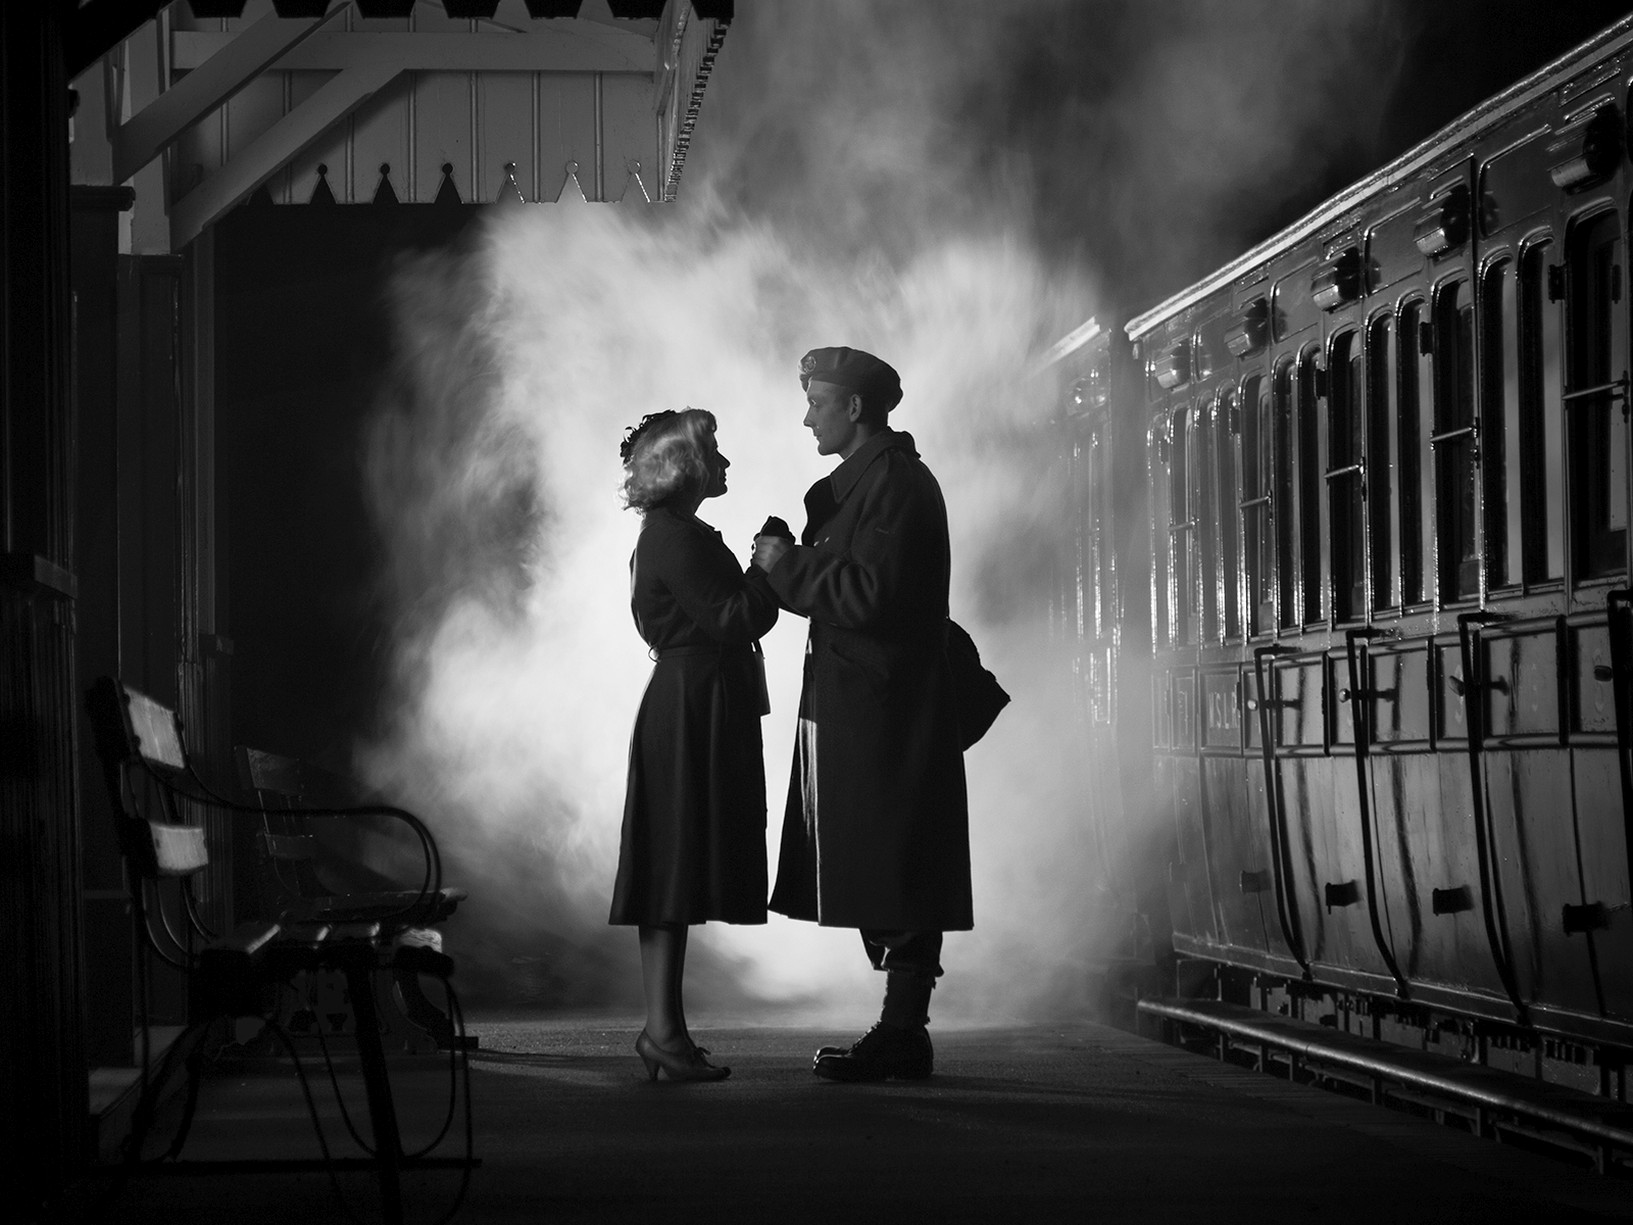 2nd Place - Brief Encounter - Pat Jacobs